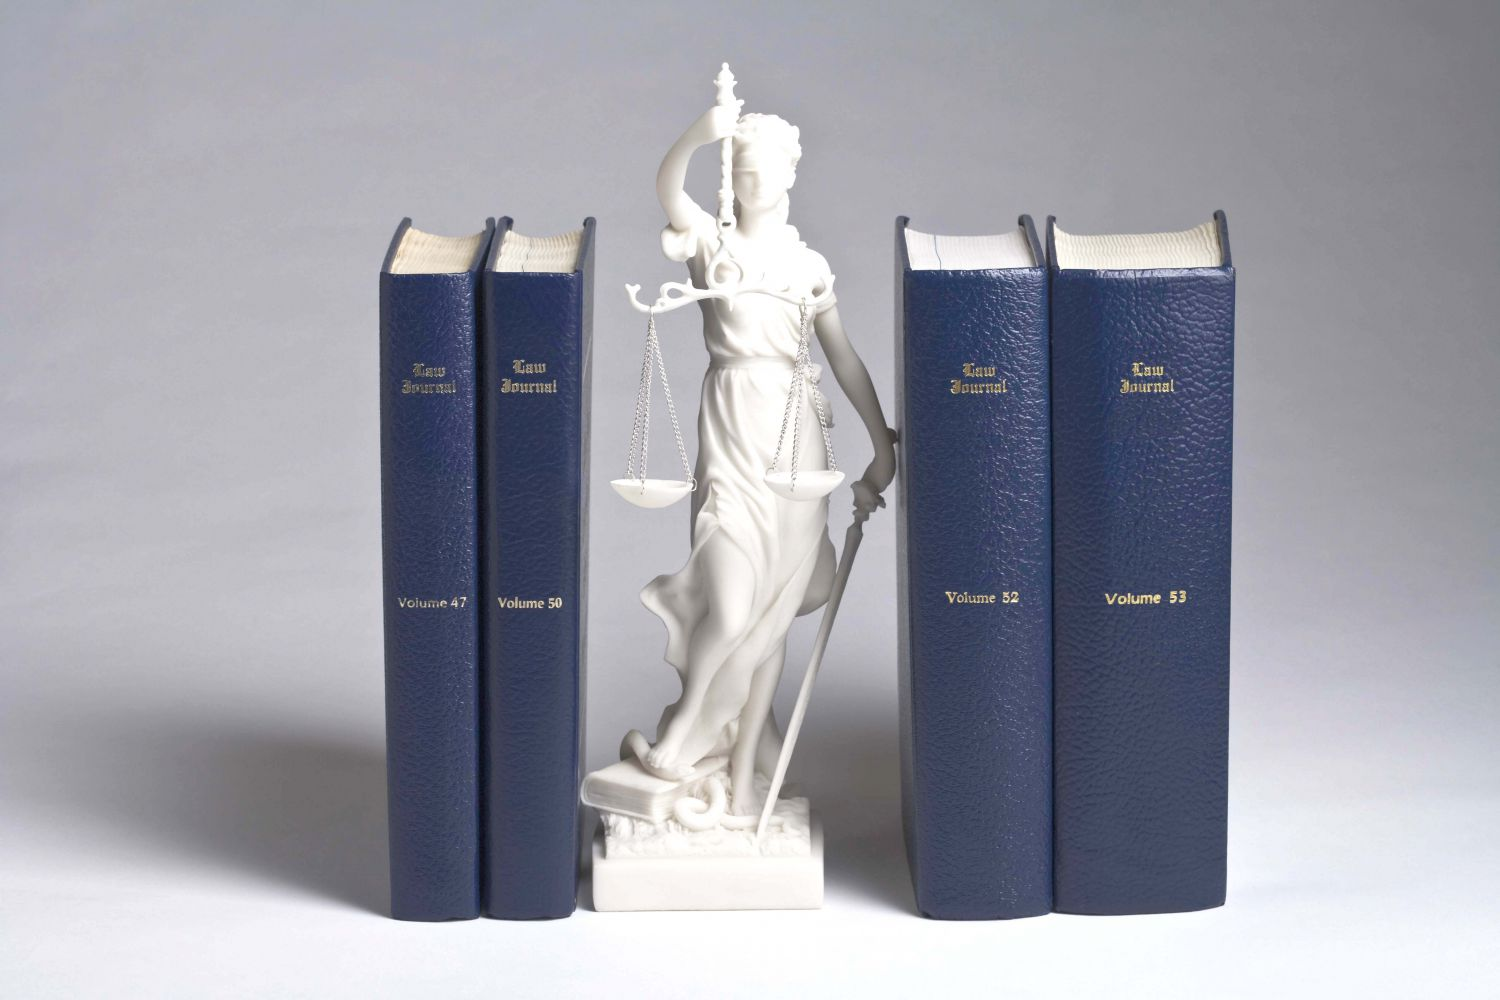 Legal books for legal support in Anchorage, AK